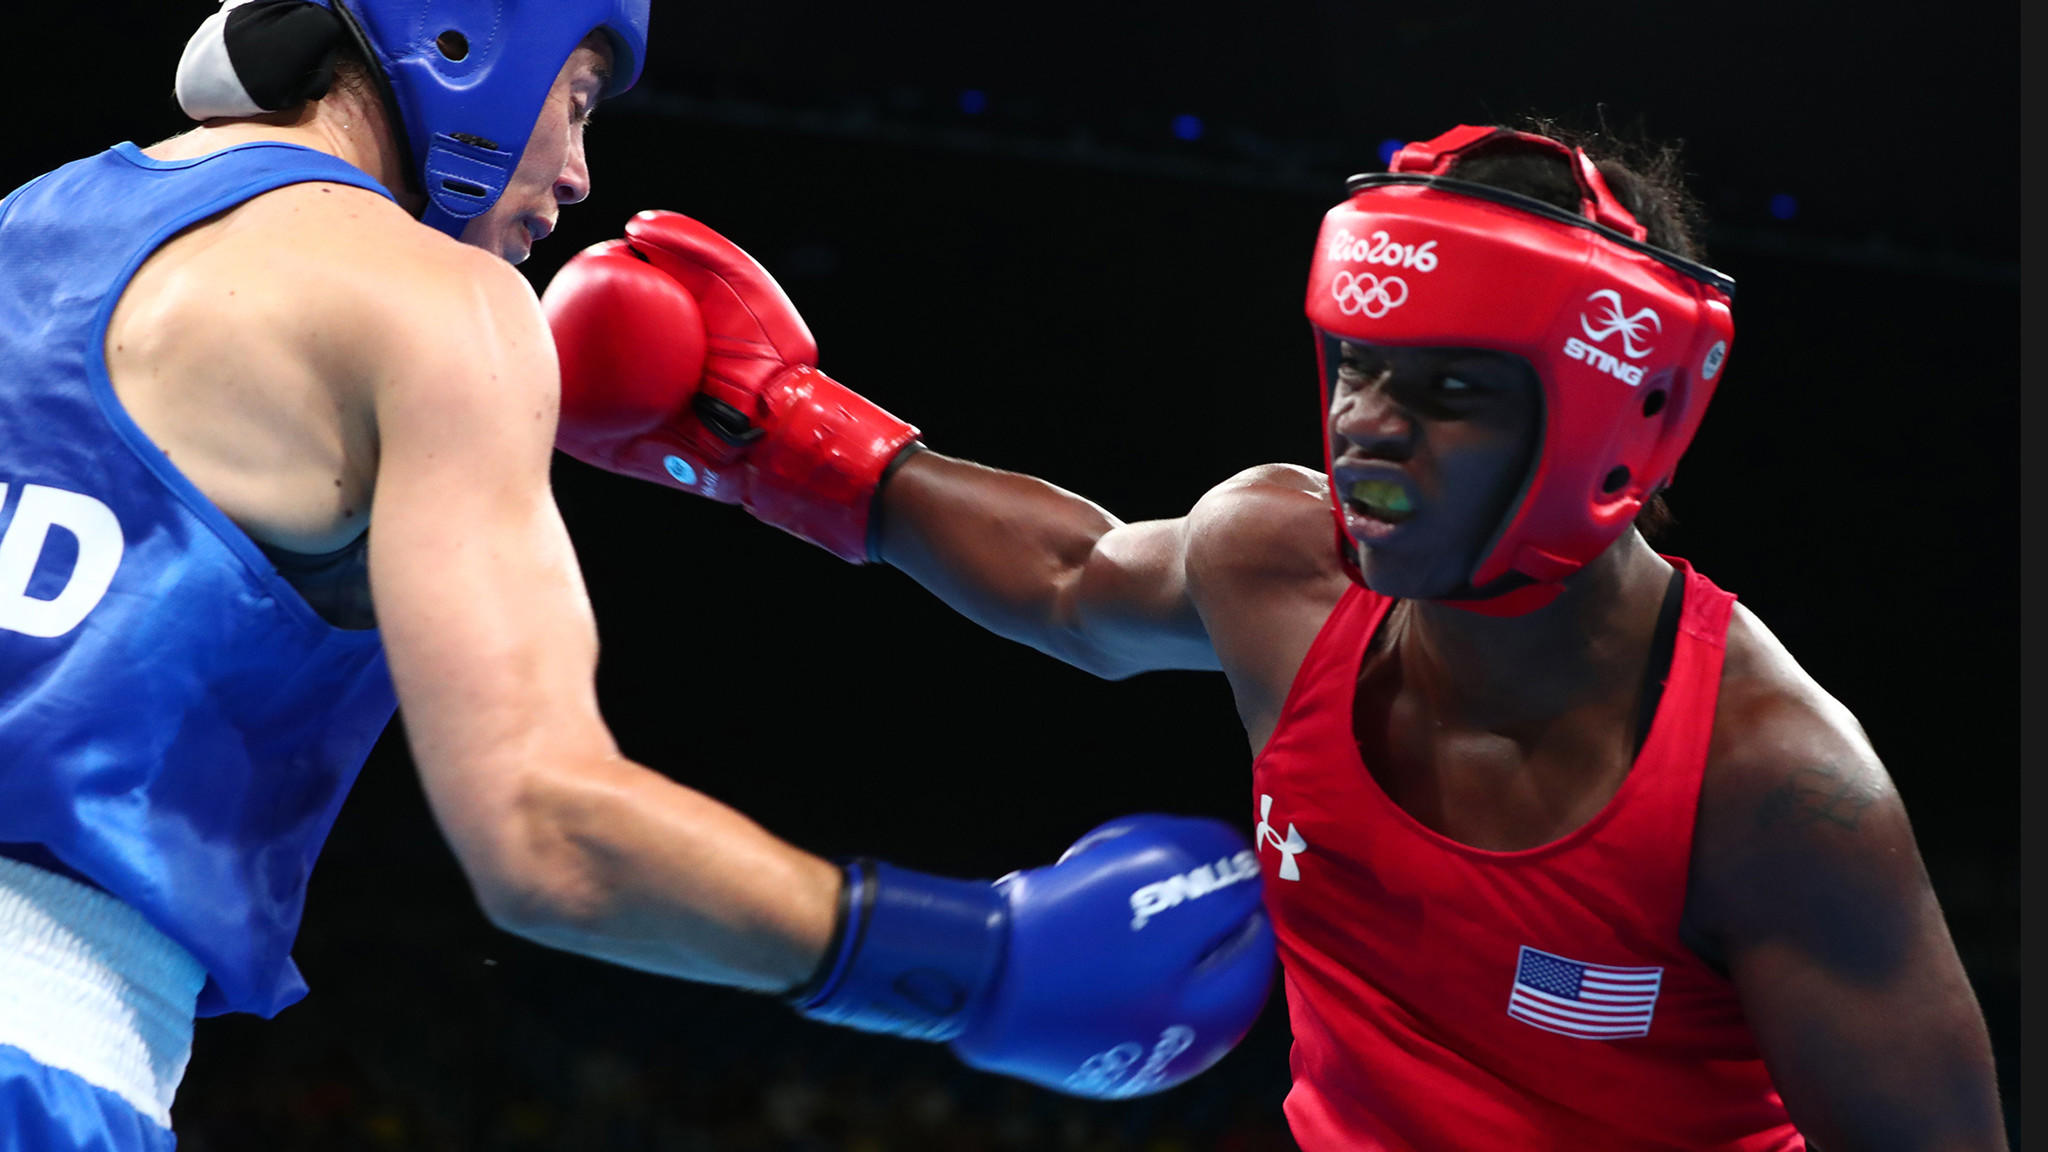 Claressa Shields fights her way to a gold medal over  Nouchka Fontijn of the Netherlands. (Robert Gauthier / Los Angeles Times)